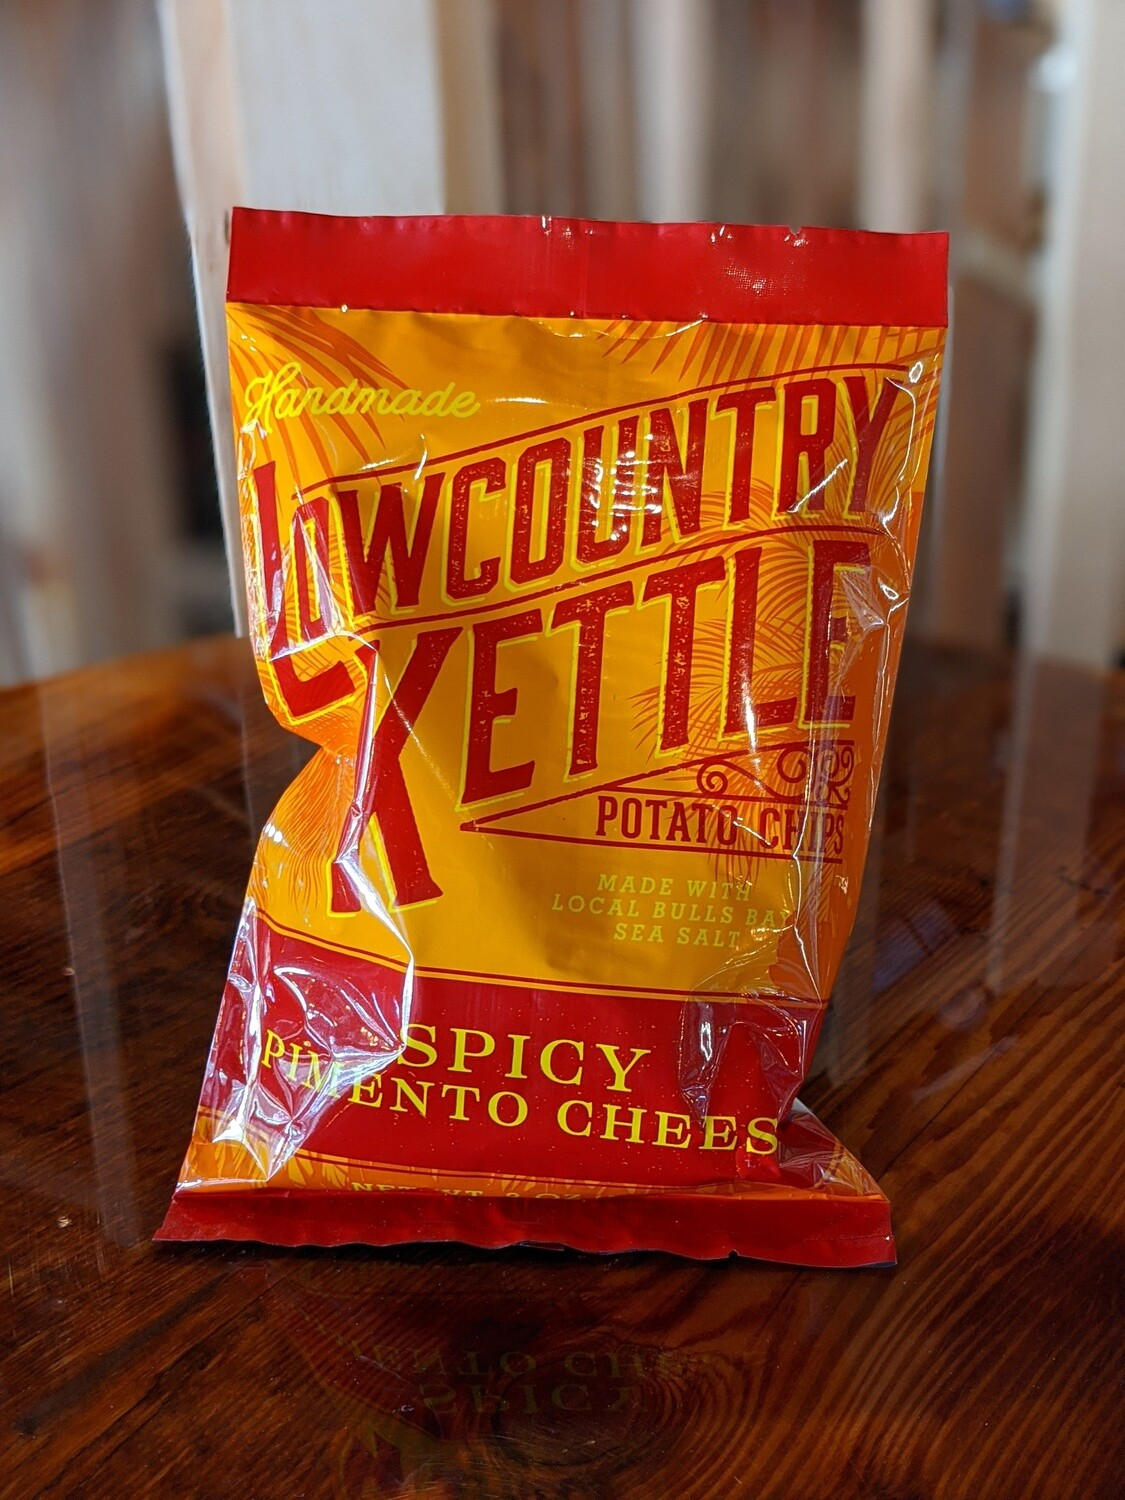 Lowcountry Kettle Chips Spicy Pimento Chips